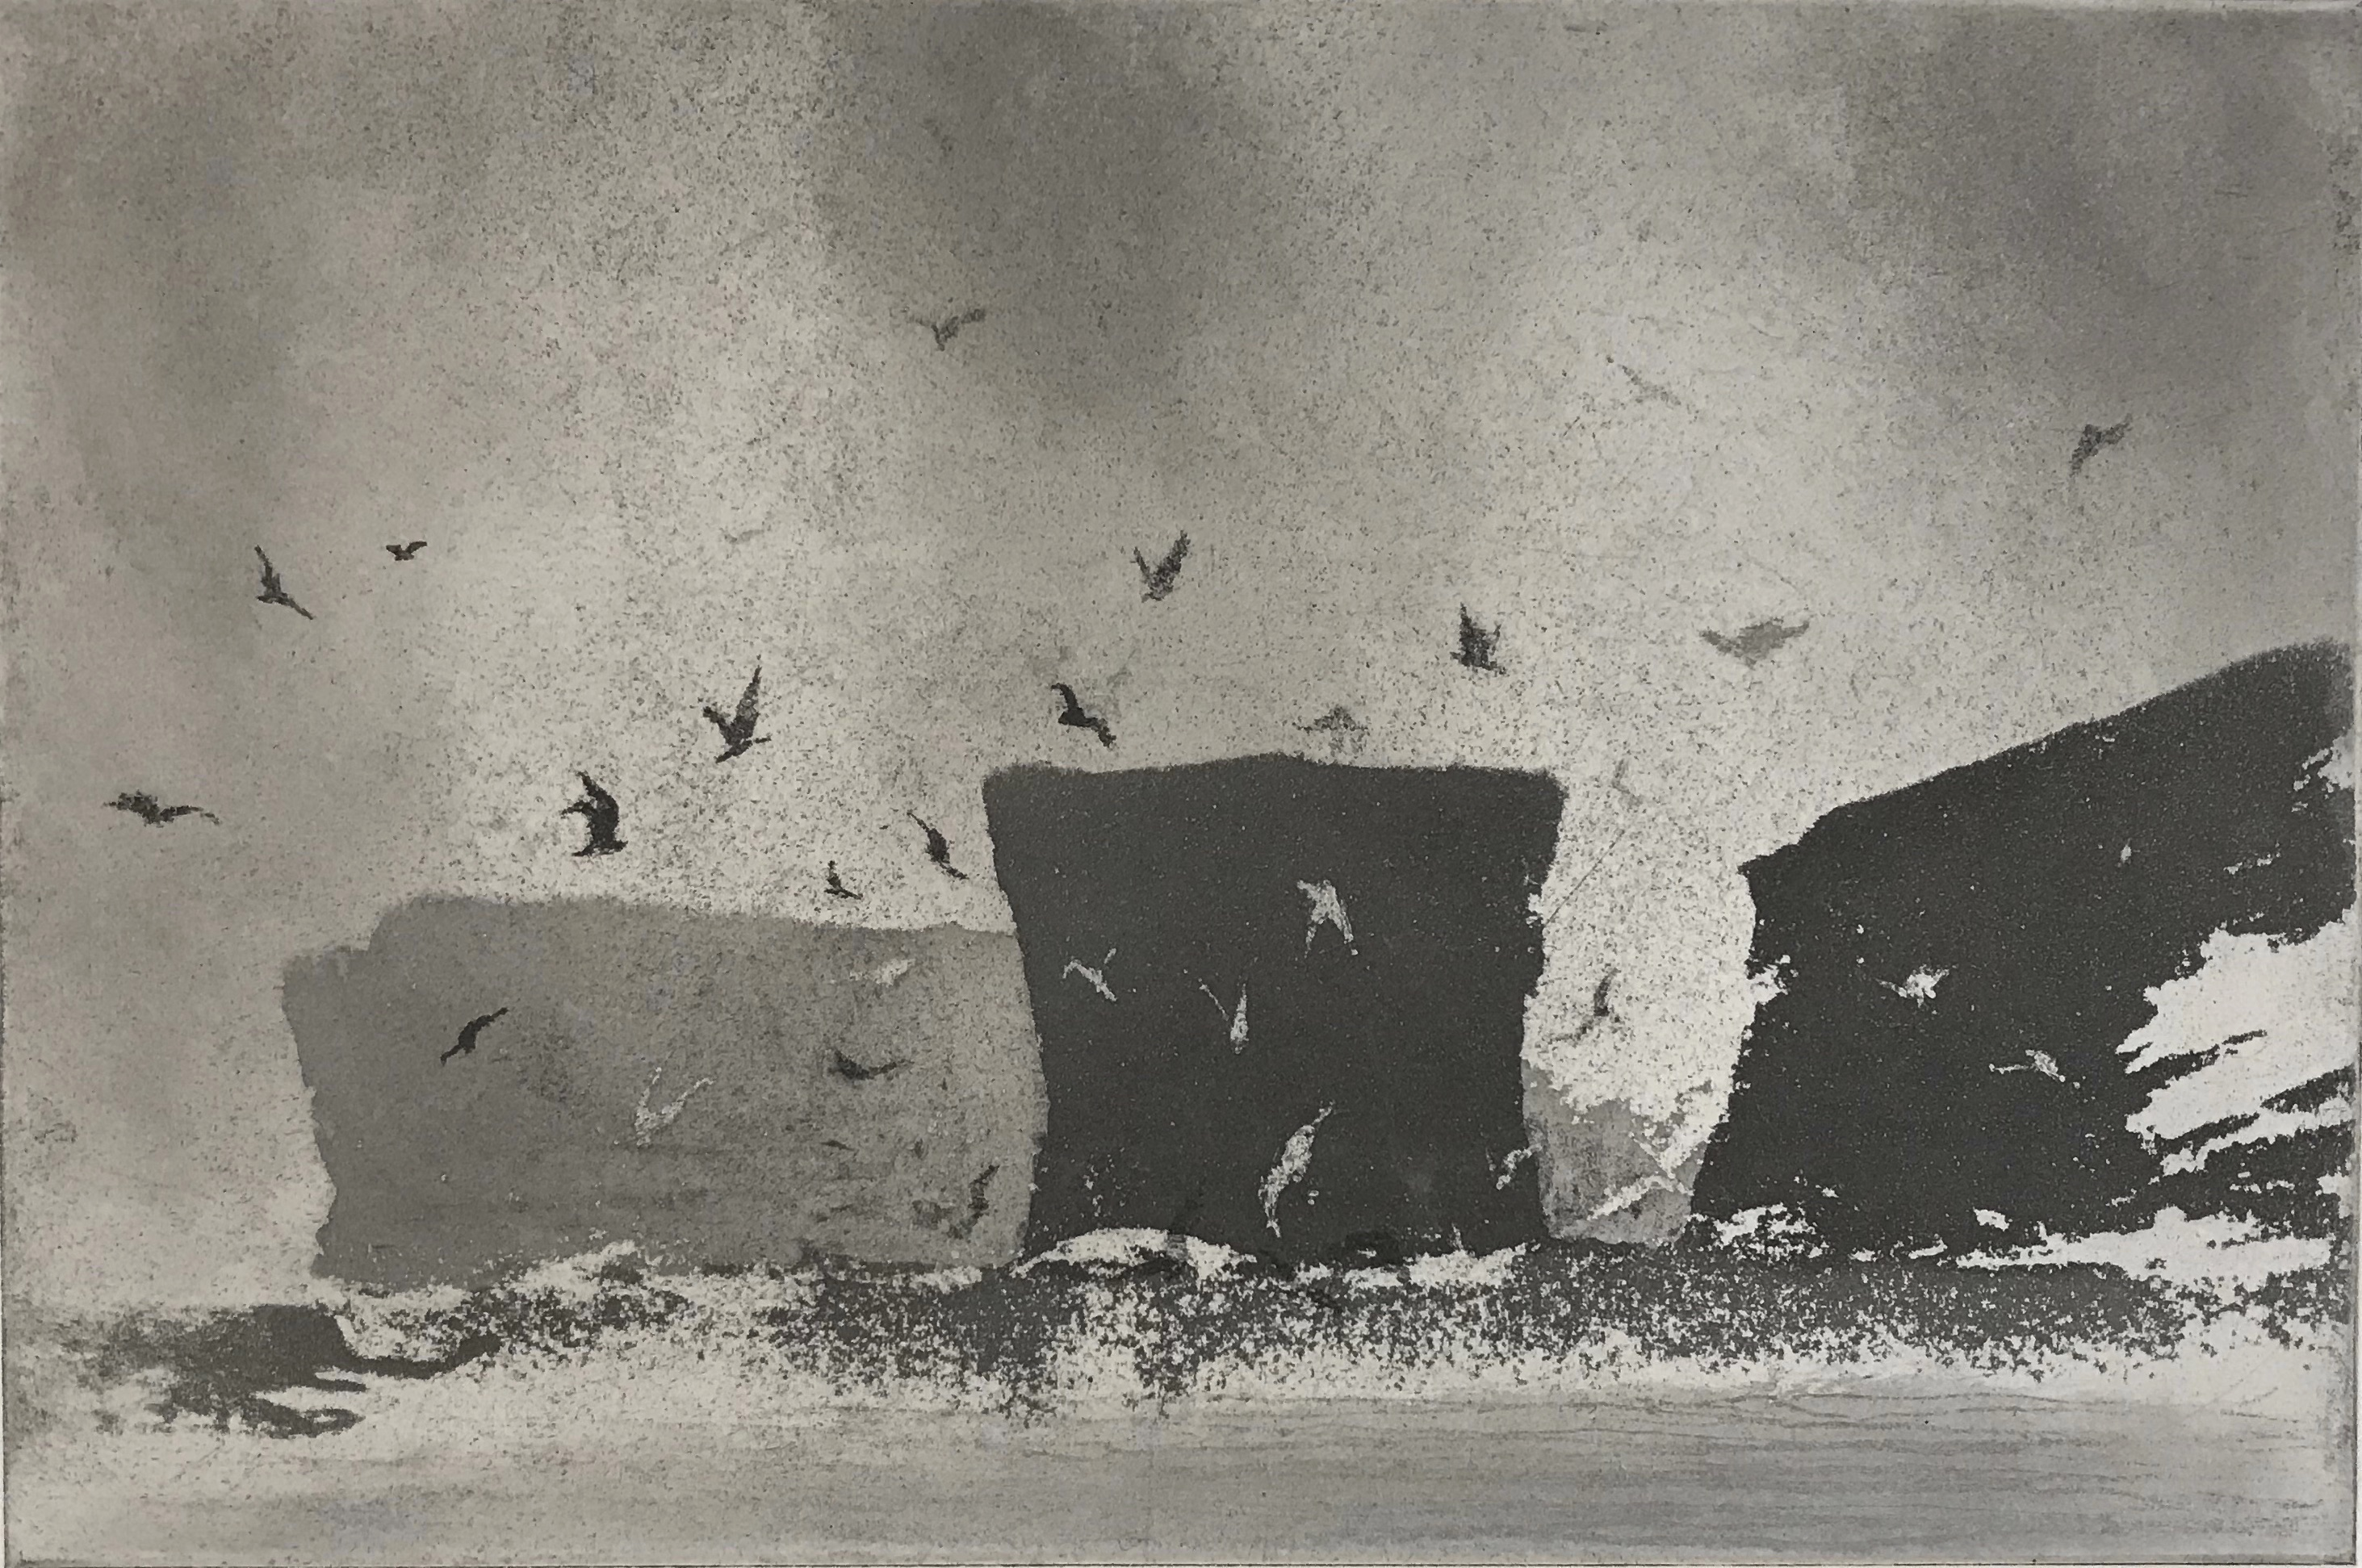 The Anvil Norman Ackroyd Etching, signed dated and titled in pencil. Numbered from the edition of 90. From the box set 'Fragments', 2017